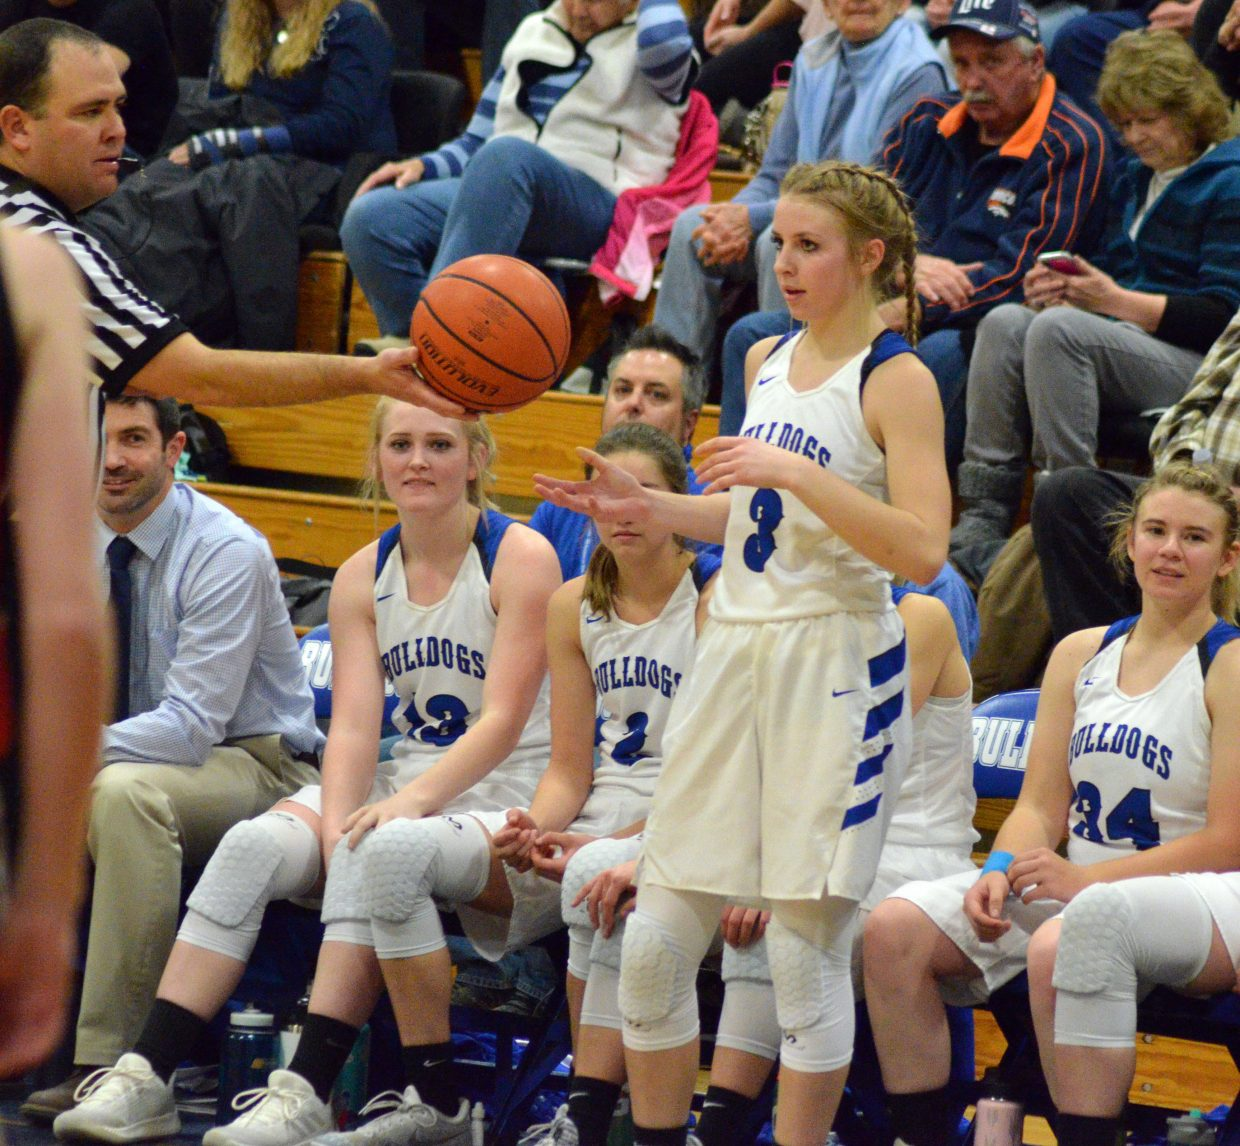 Moffat County High School's Halle Hamilton gets ready to inbound the ball in front of the Bulldog bench.